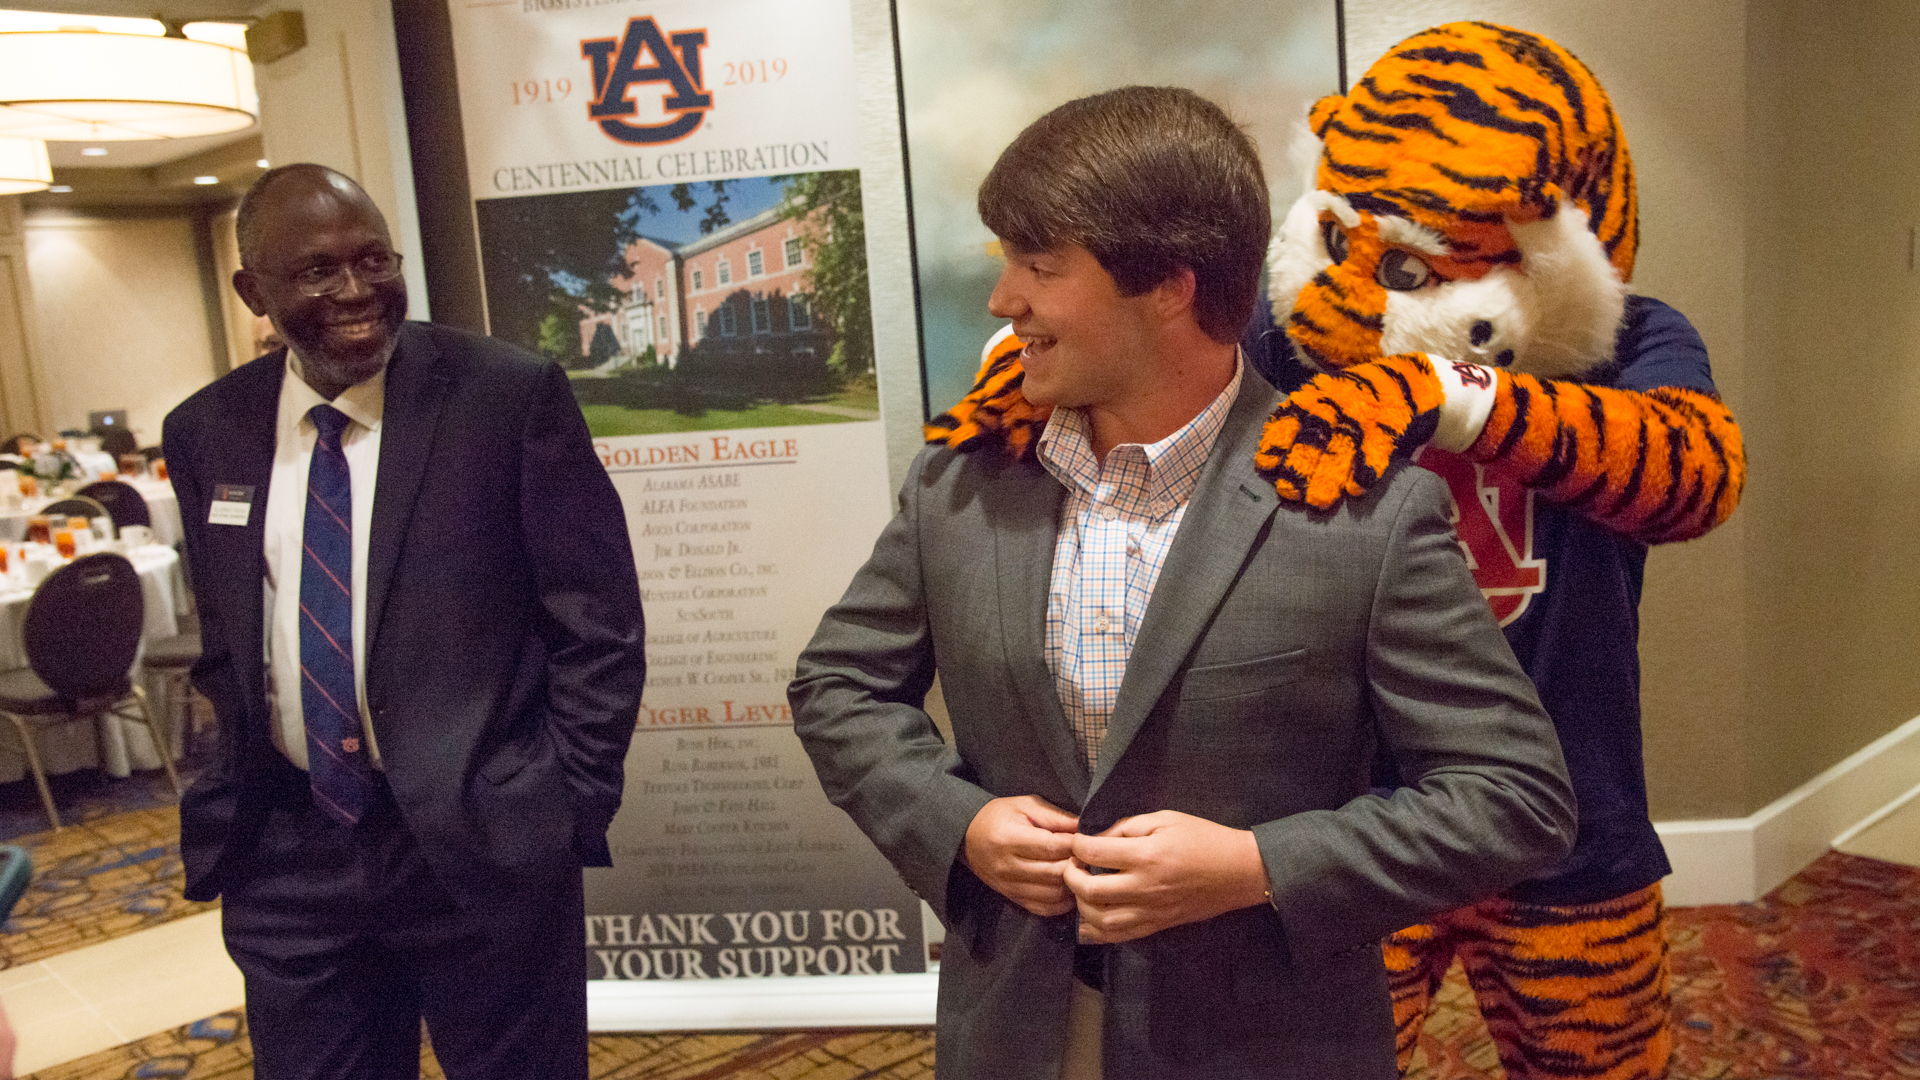 Aubie massaging a Biosystems Engineering college student's shoulders at Centennial Celebration, The Hotel at Auburn, Alabama, USA